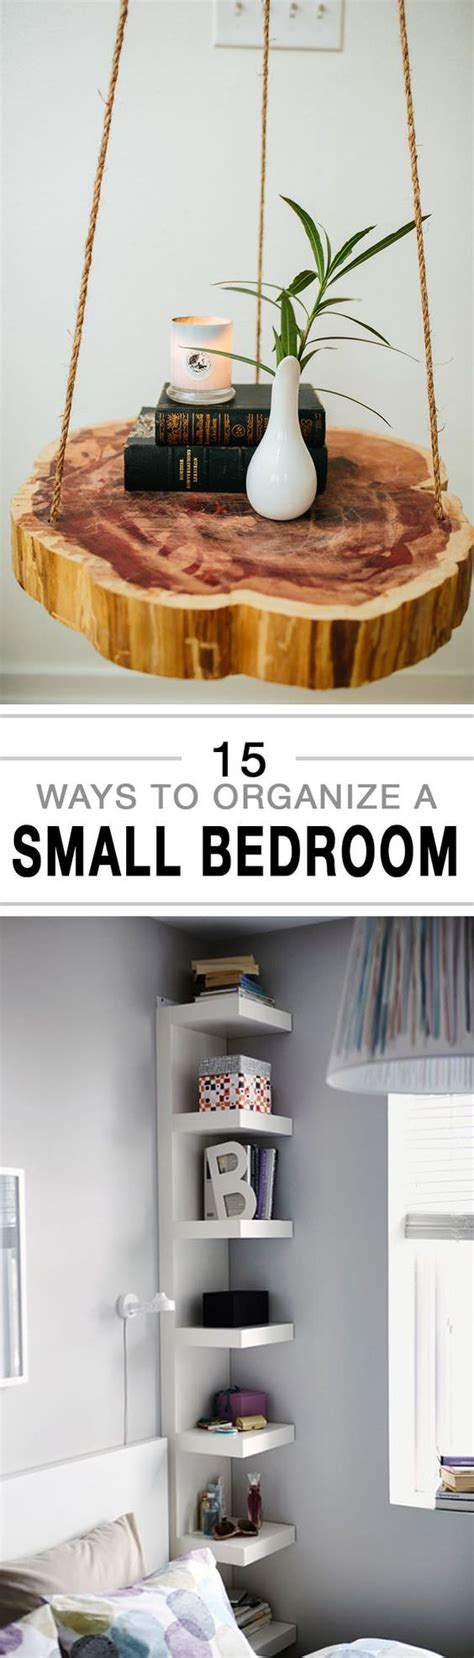 organize small bedroom 15 ways to organize a small bedroom house